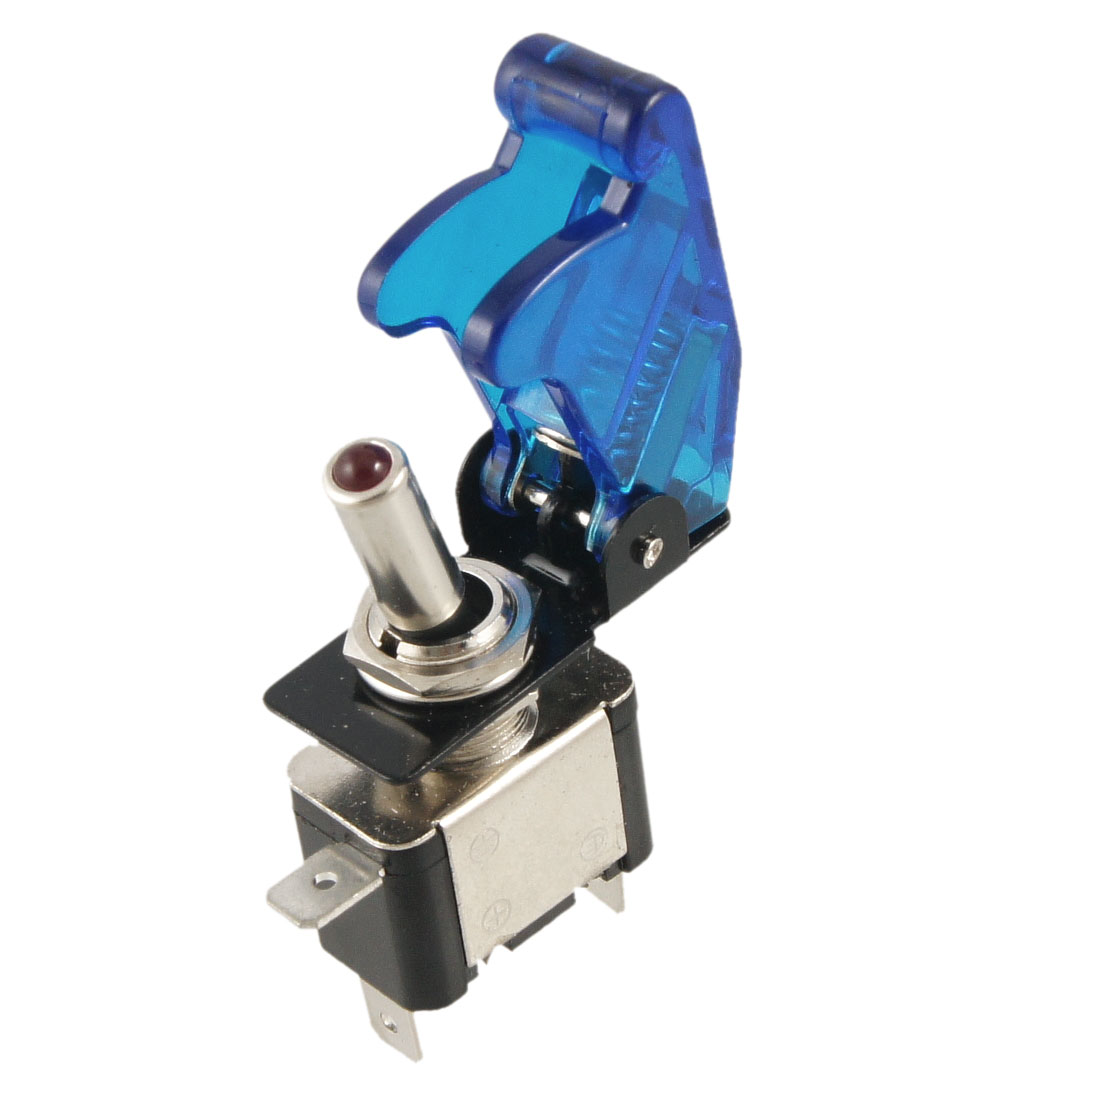 DC 12V 20A On Off Racing Car Illuminated Toggle Switch + Blue Cover